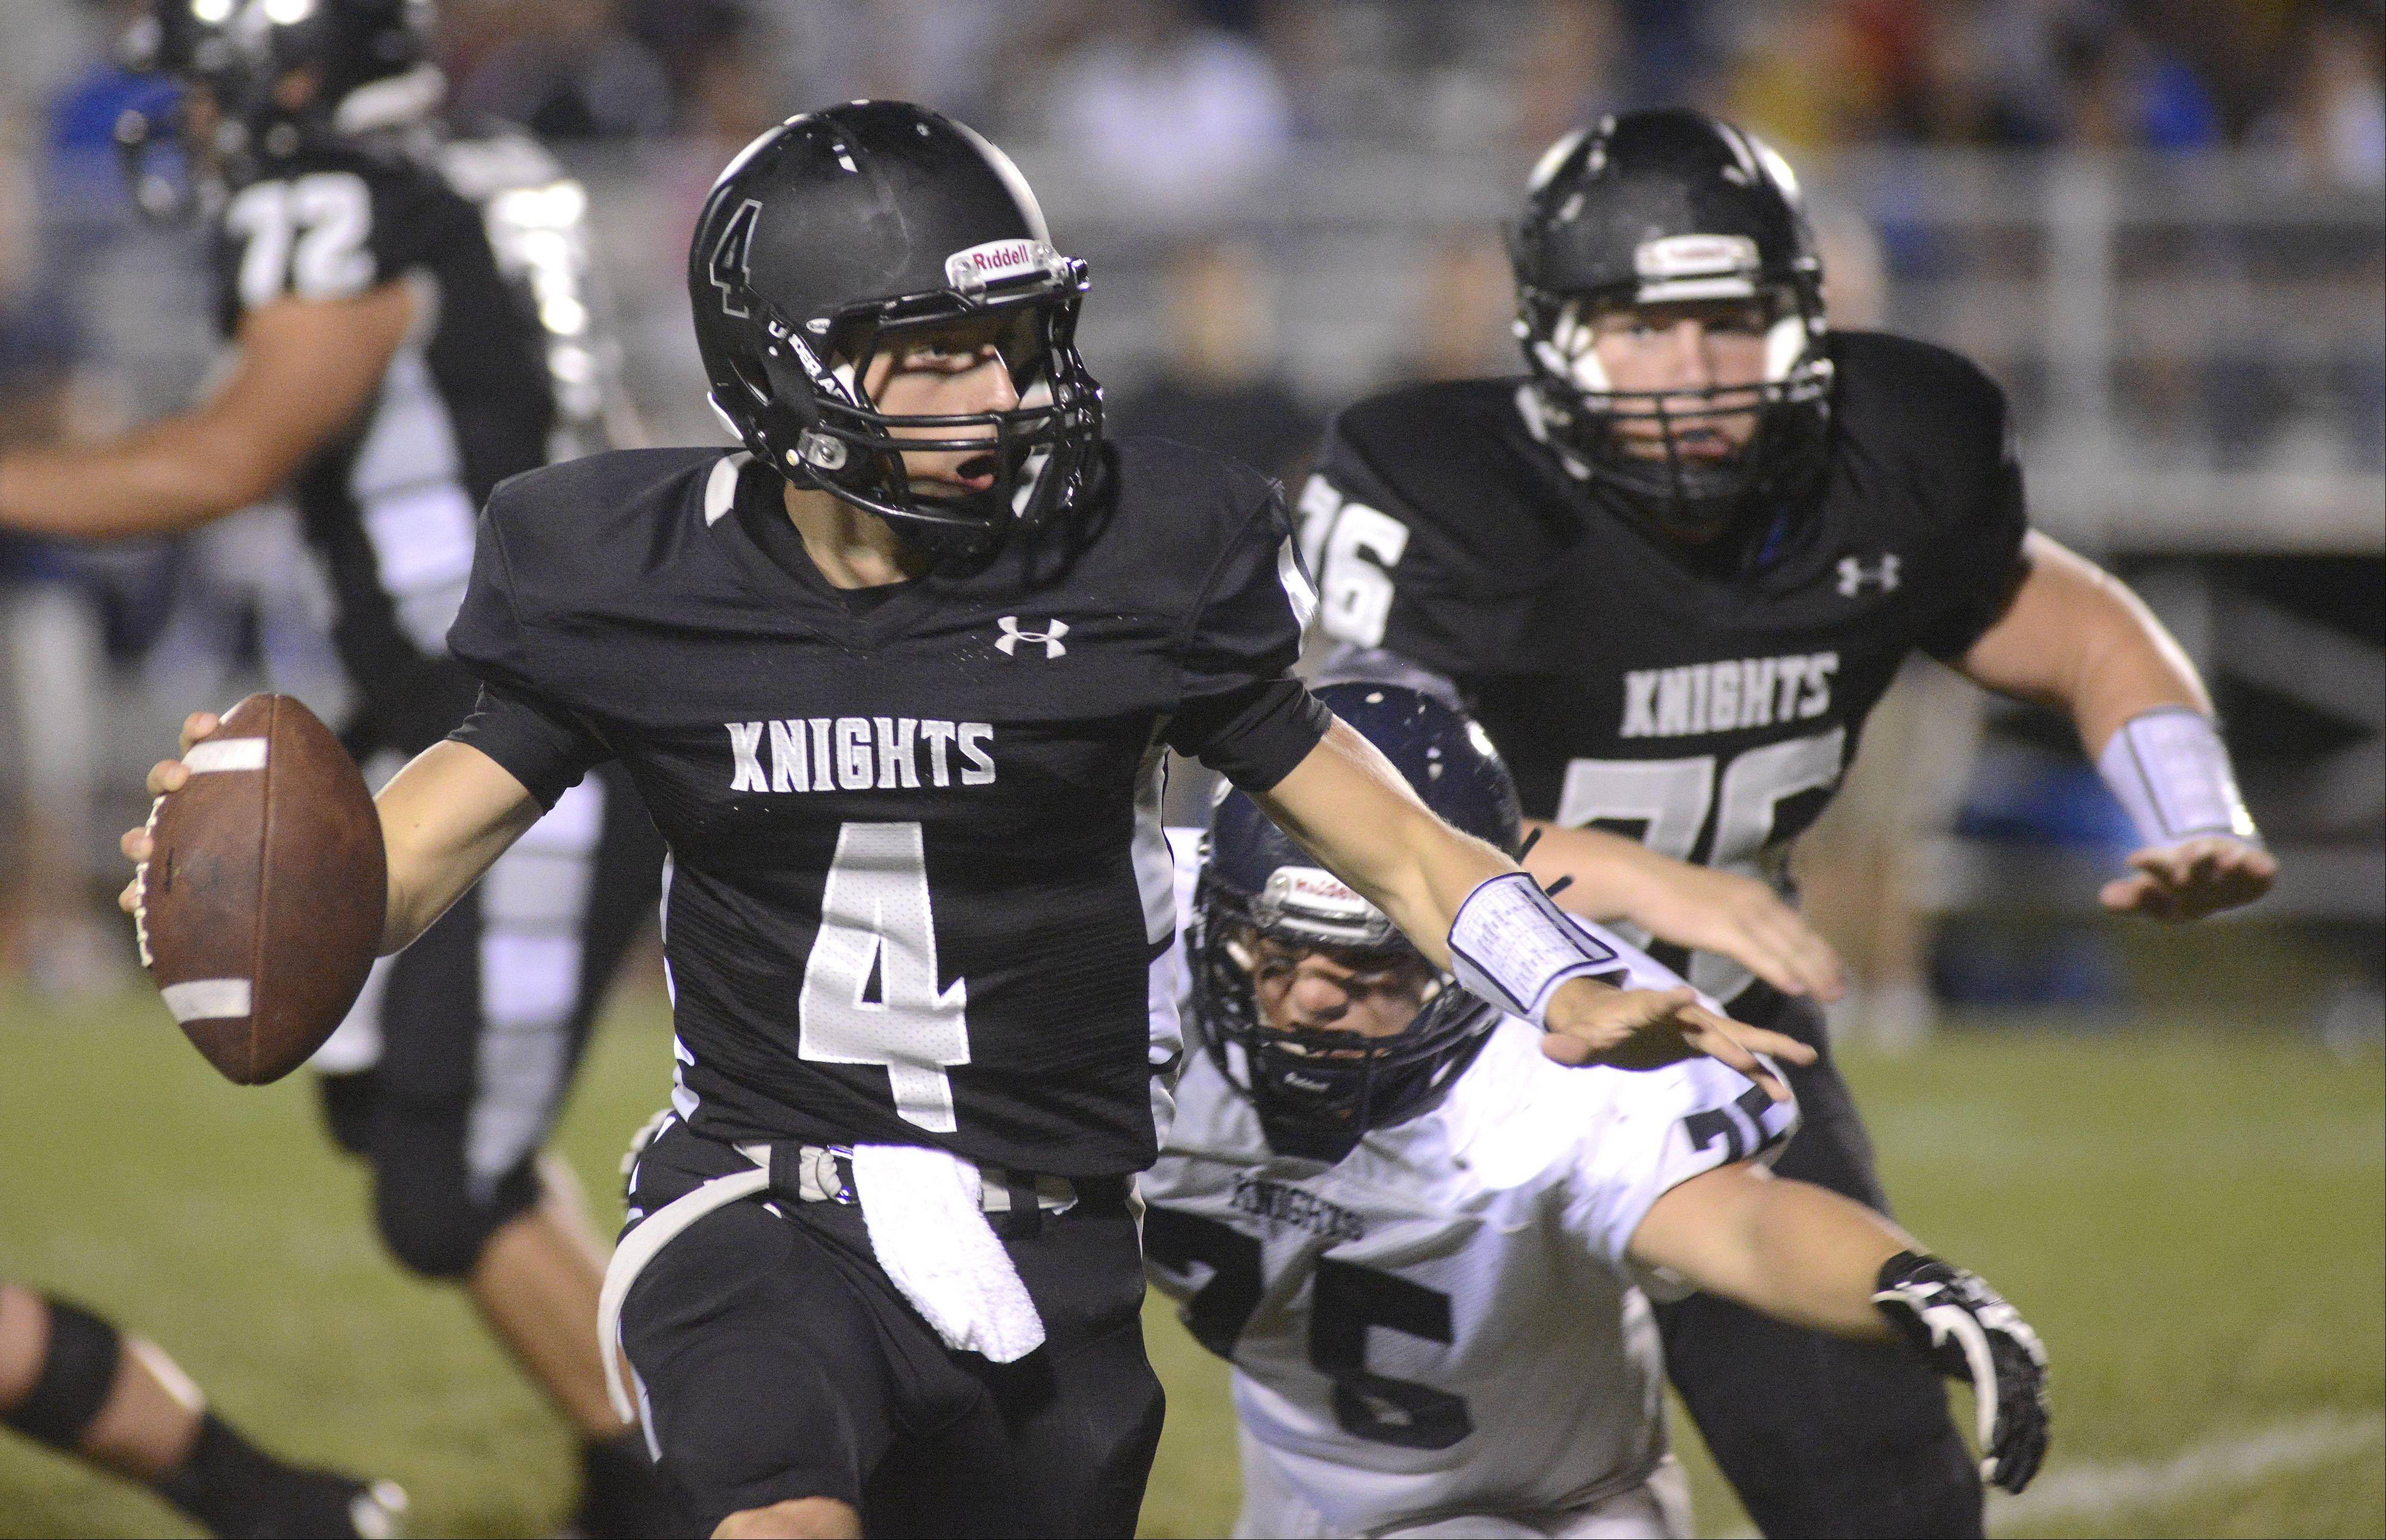 Kaneland quarterback Drew David looks to pass the ball before being sacked by IC Catholic Prep's Sam Lytton in the second quarter.